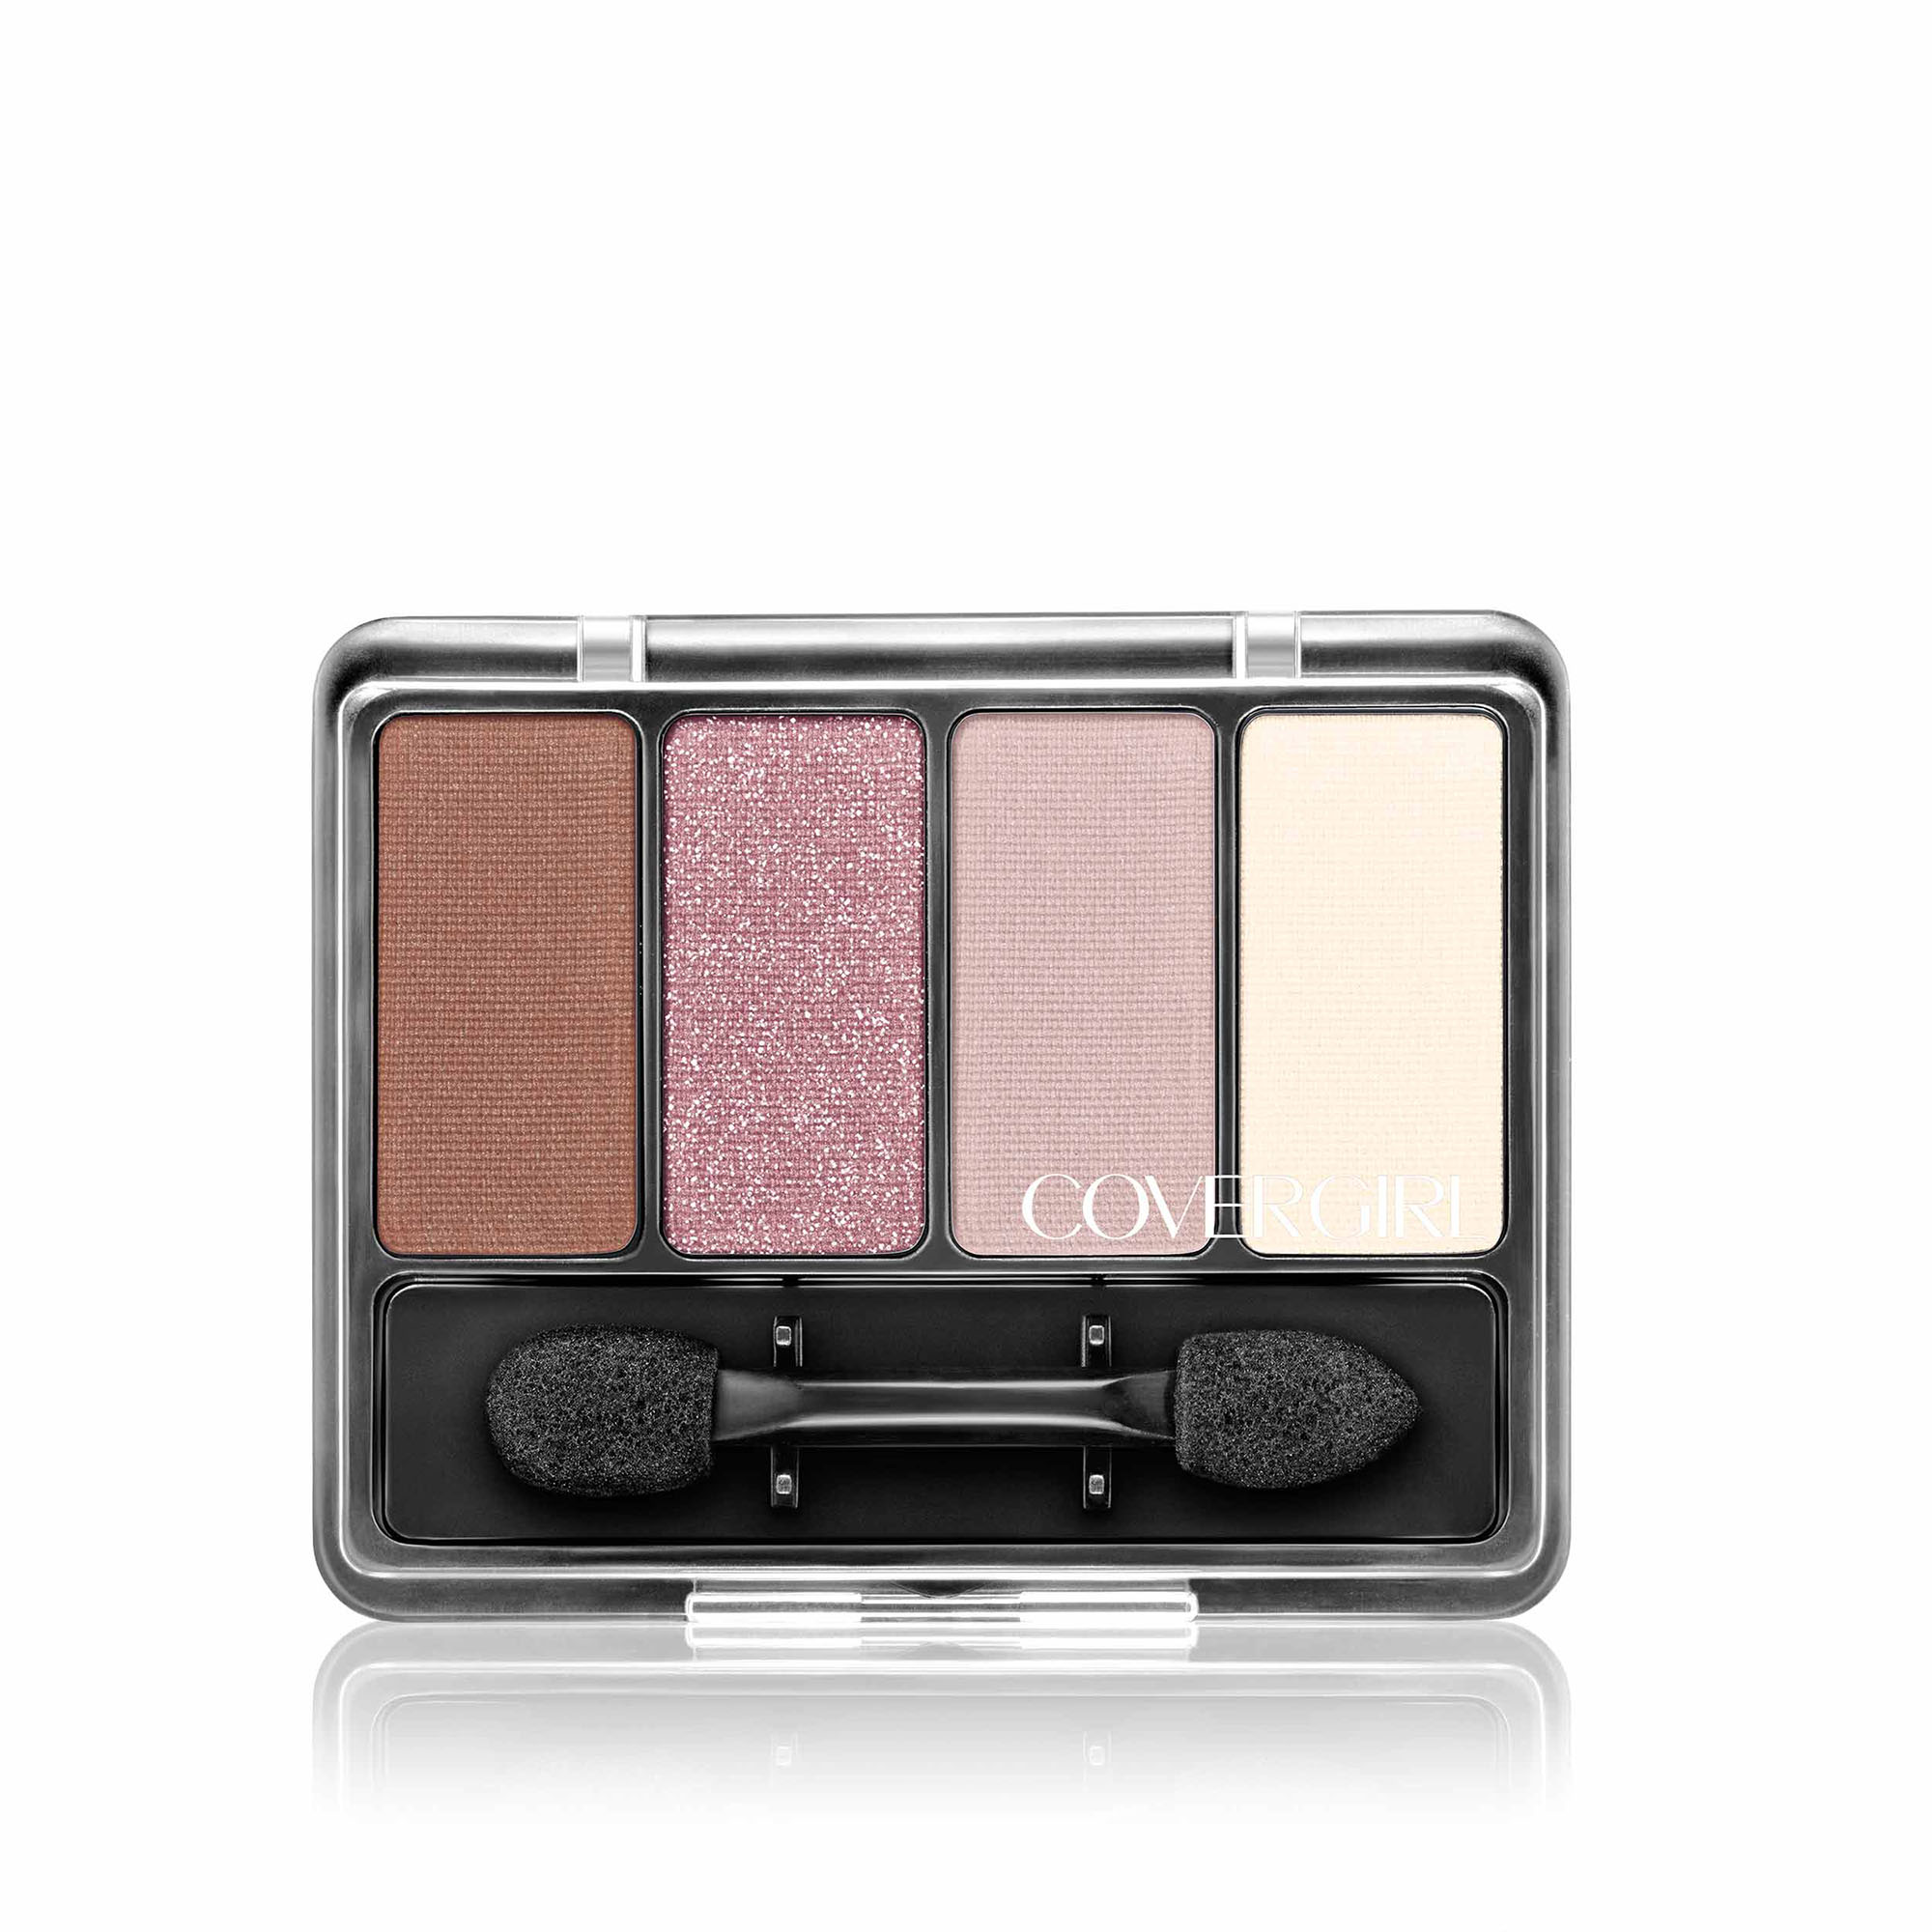 COVERGIRL Eye Enhancers 4-Kit Eye Shadow, Pure Romance 235, .19 oz